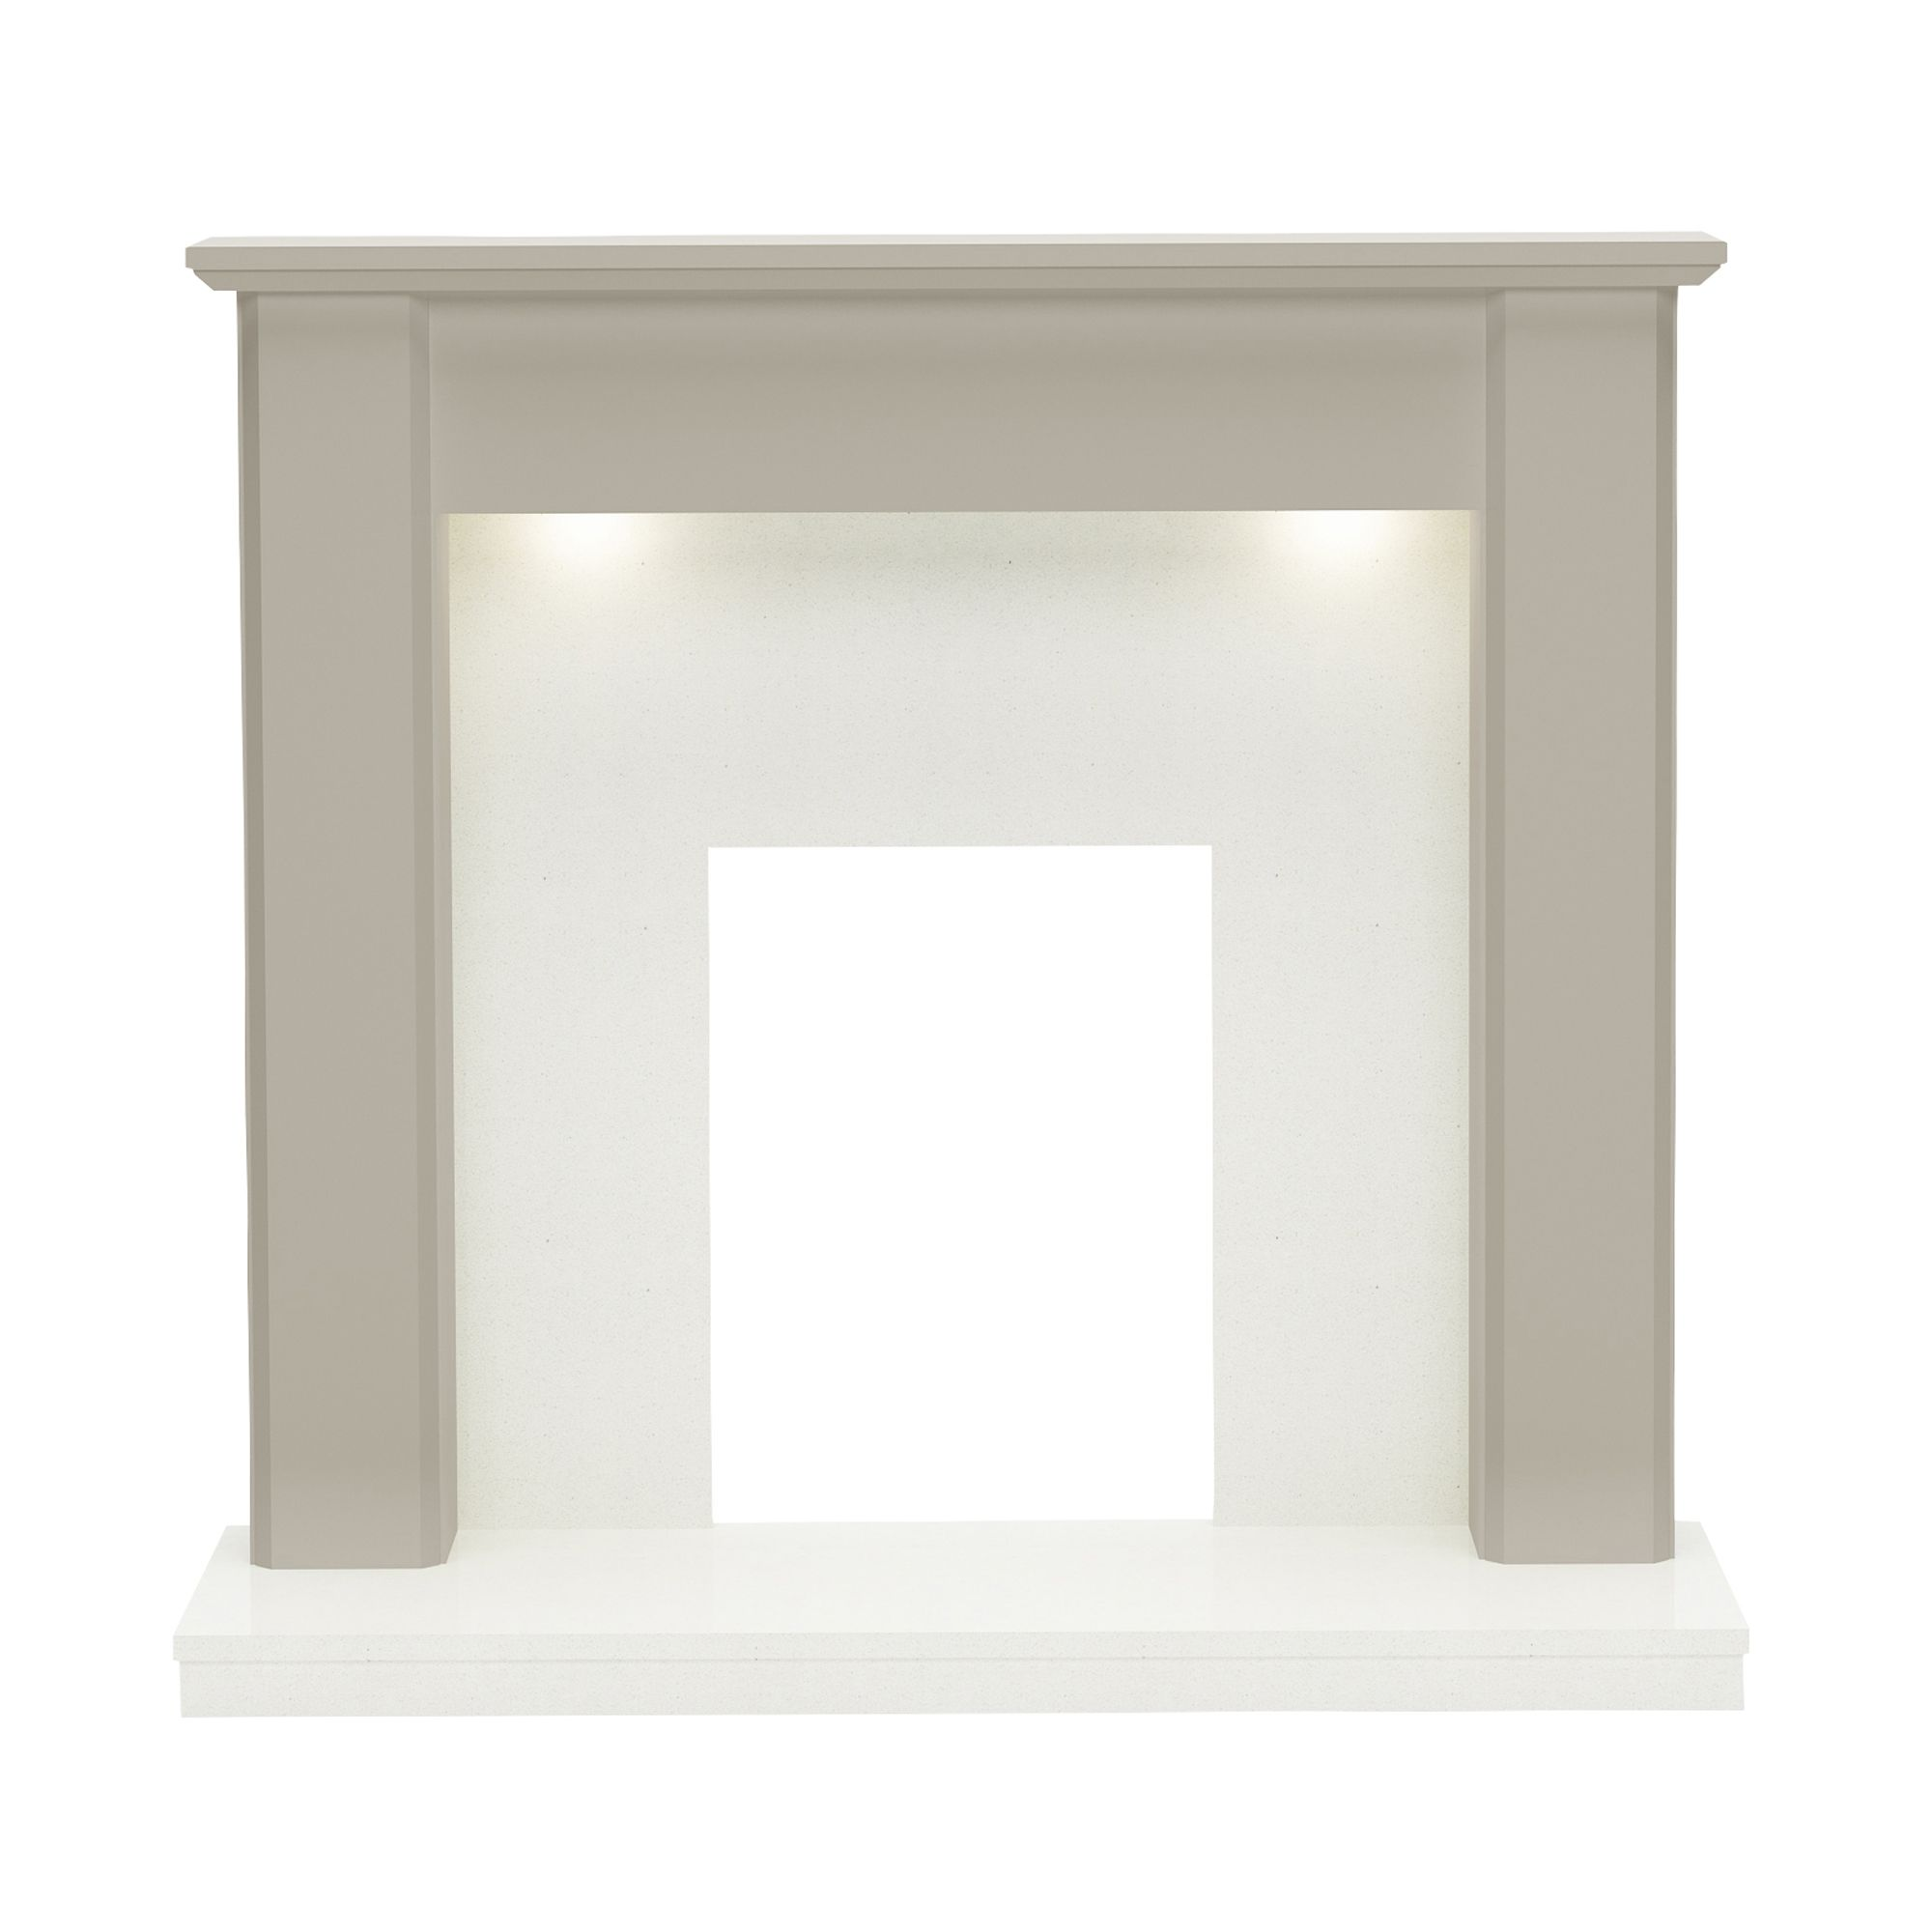 Mdf Fire Surrounds: Whitburn Stone MDF & Resin Marble Fire Surround